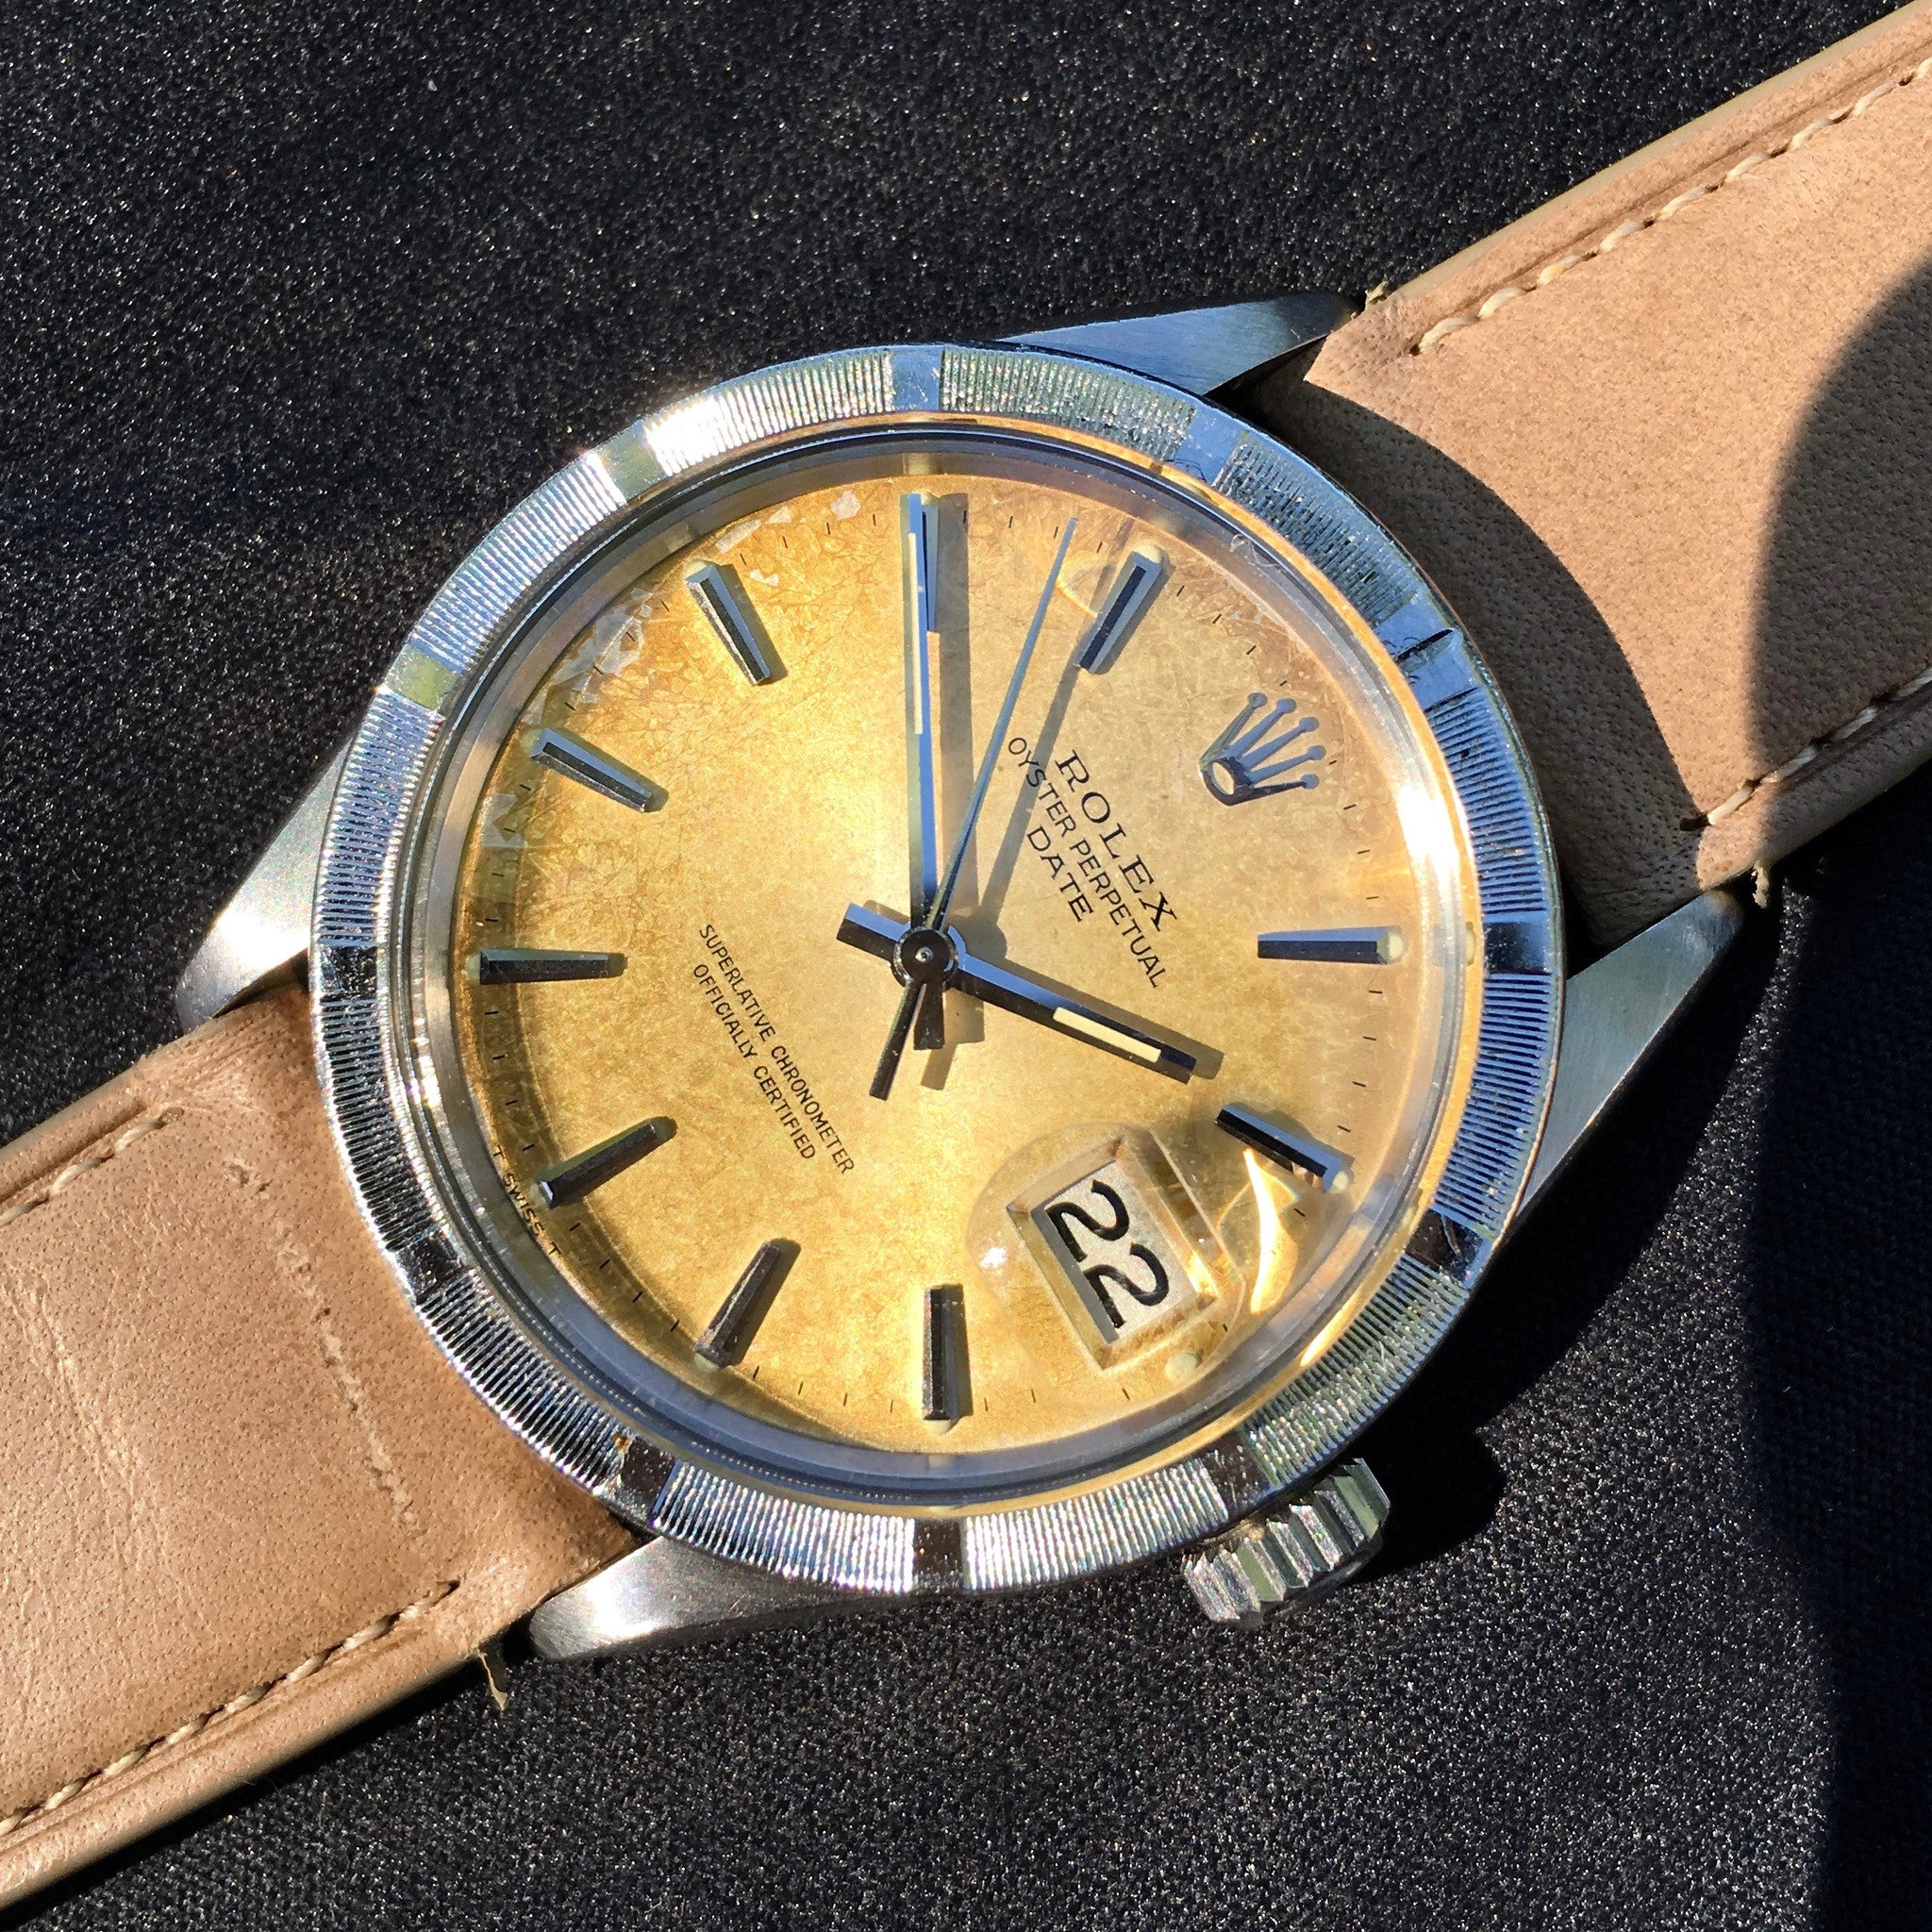 Vintage Rolex Date 1501 Tropical Creme Brûlée Stainless Steel Caliber 1570 Wristwatch 1968 - Hashtag Watch Company